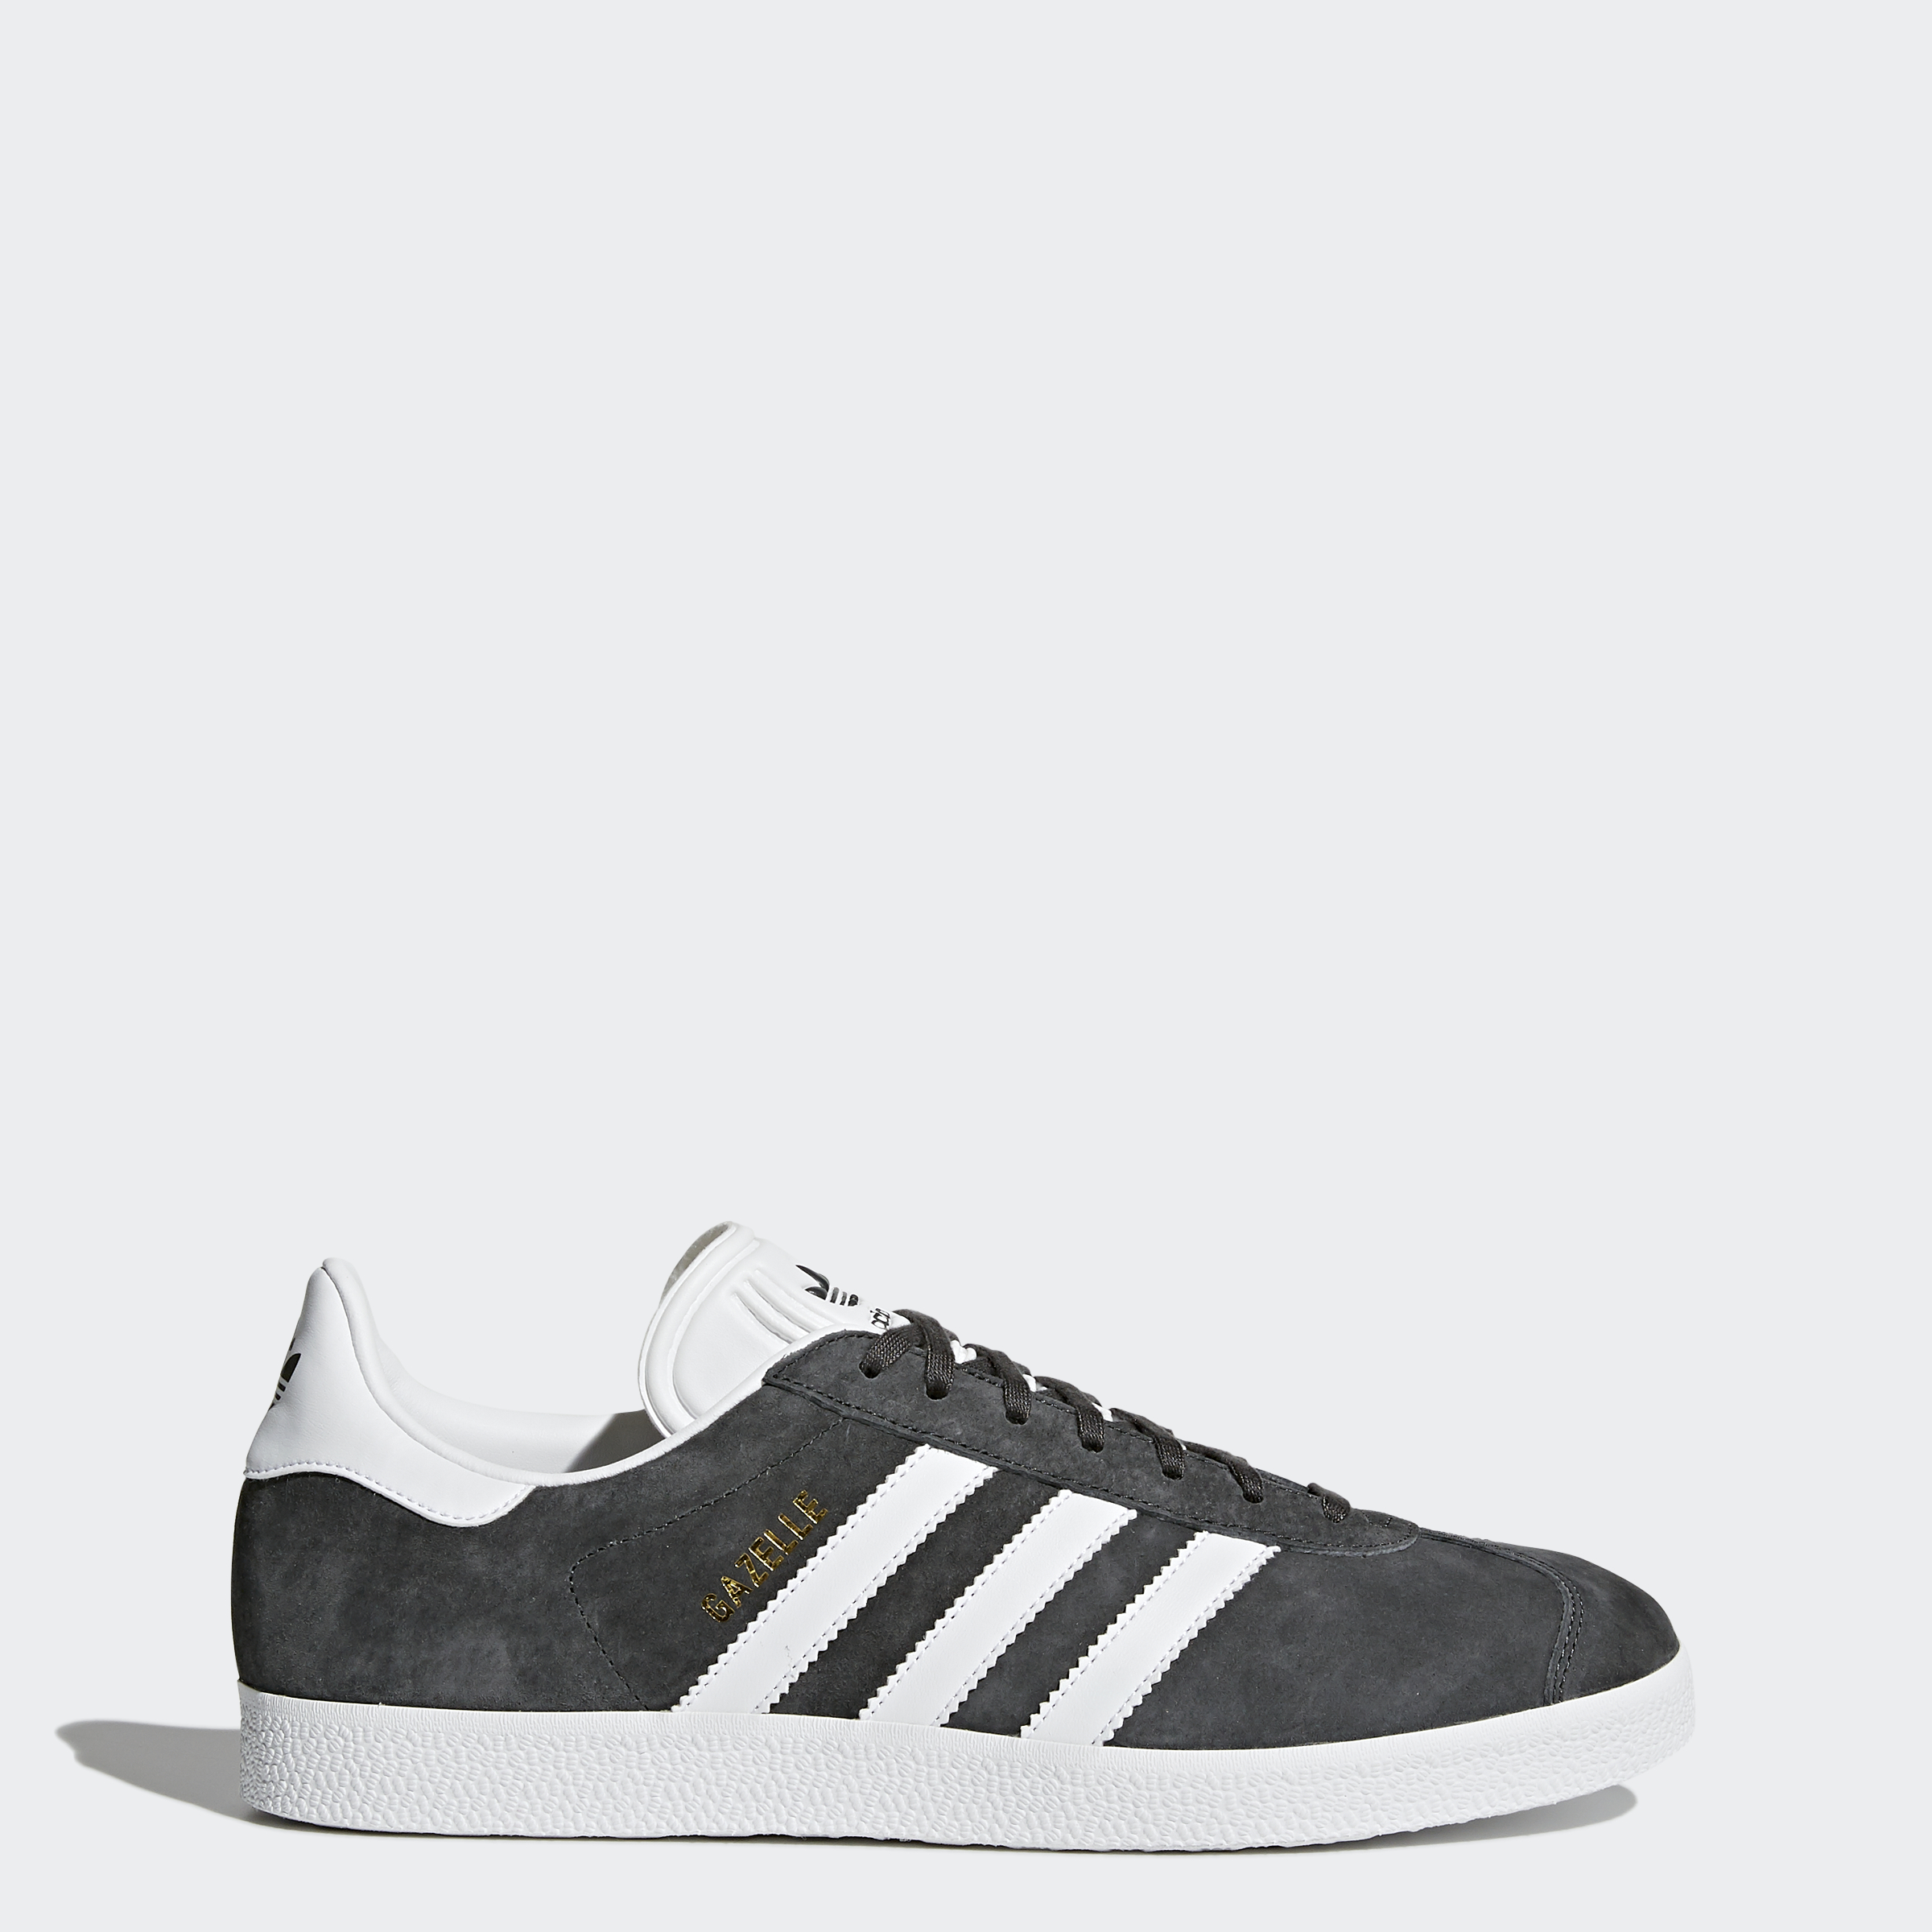 adidas-Originals-Gazelle-Shoes-Men-039-s thumbnail 10